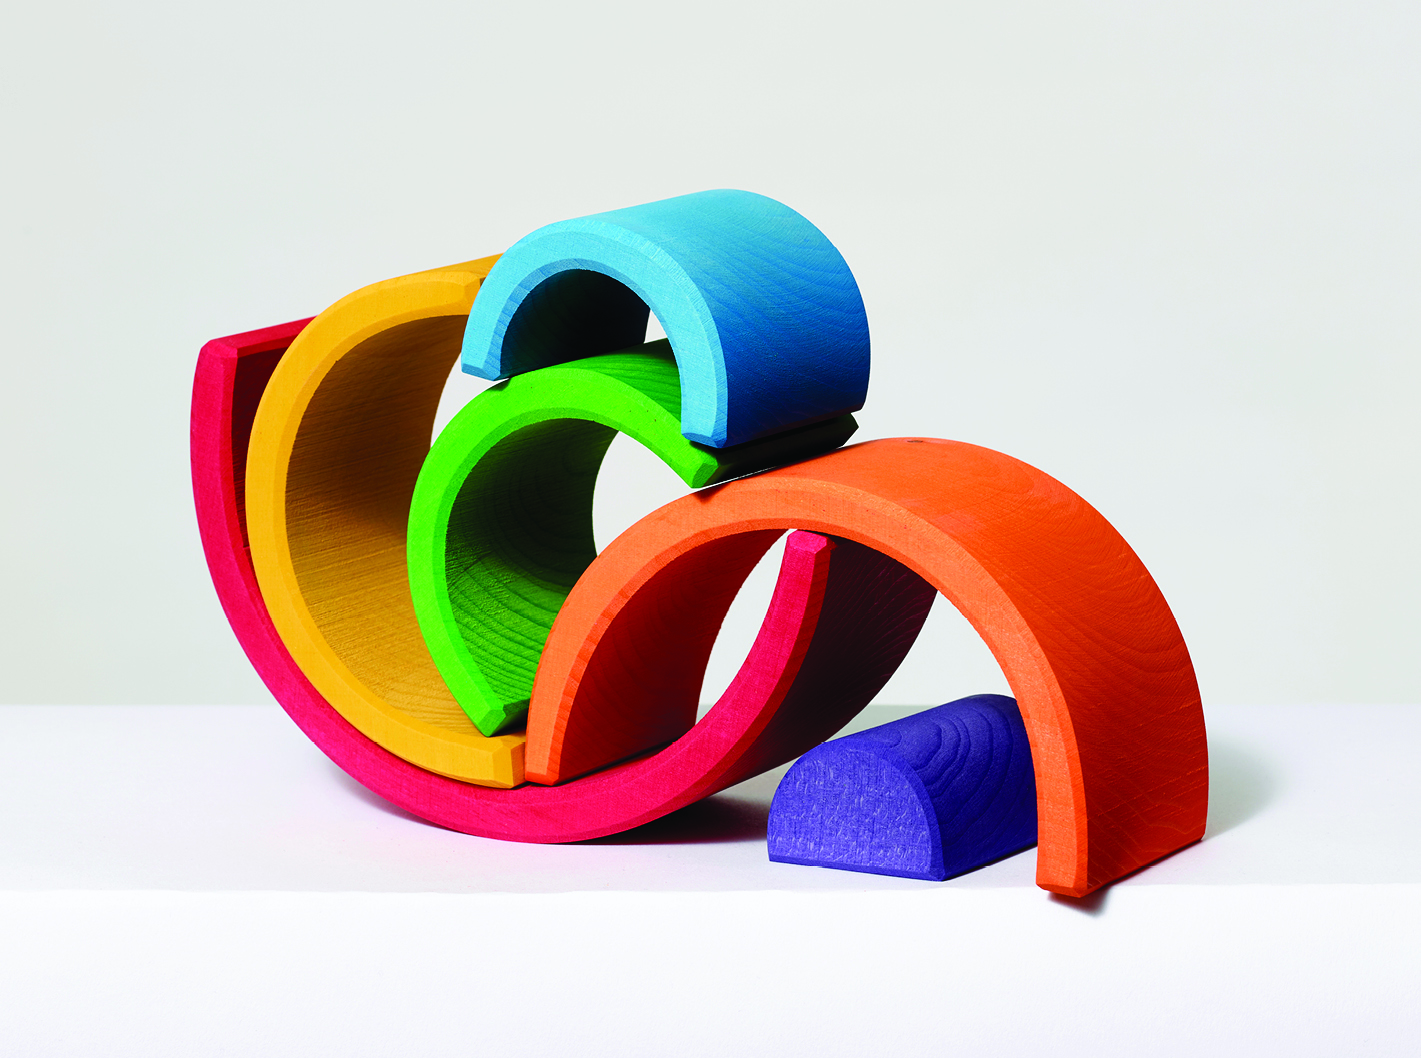 Stack of brightly colored wooden blocks